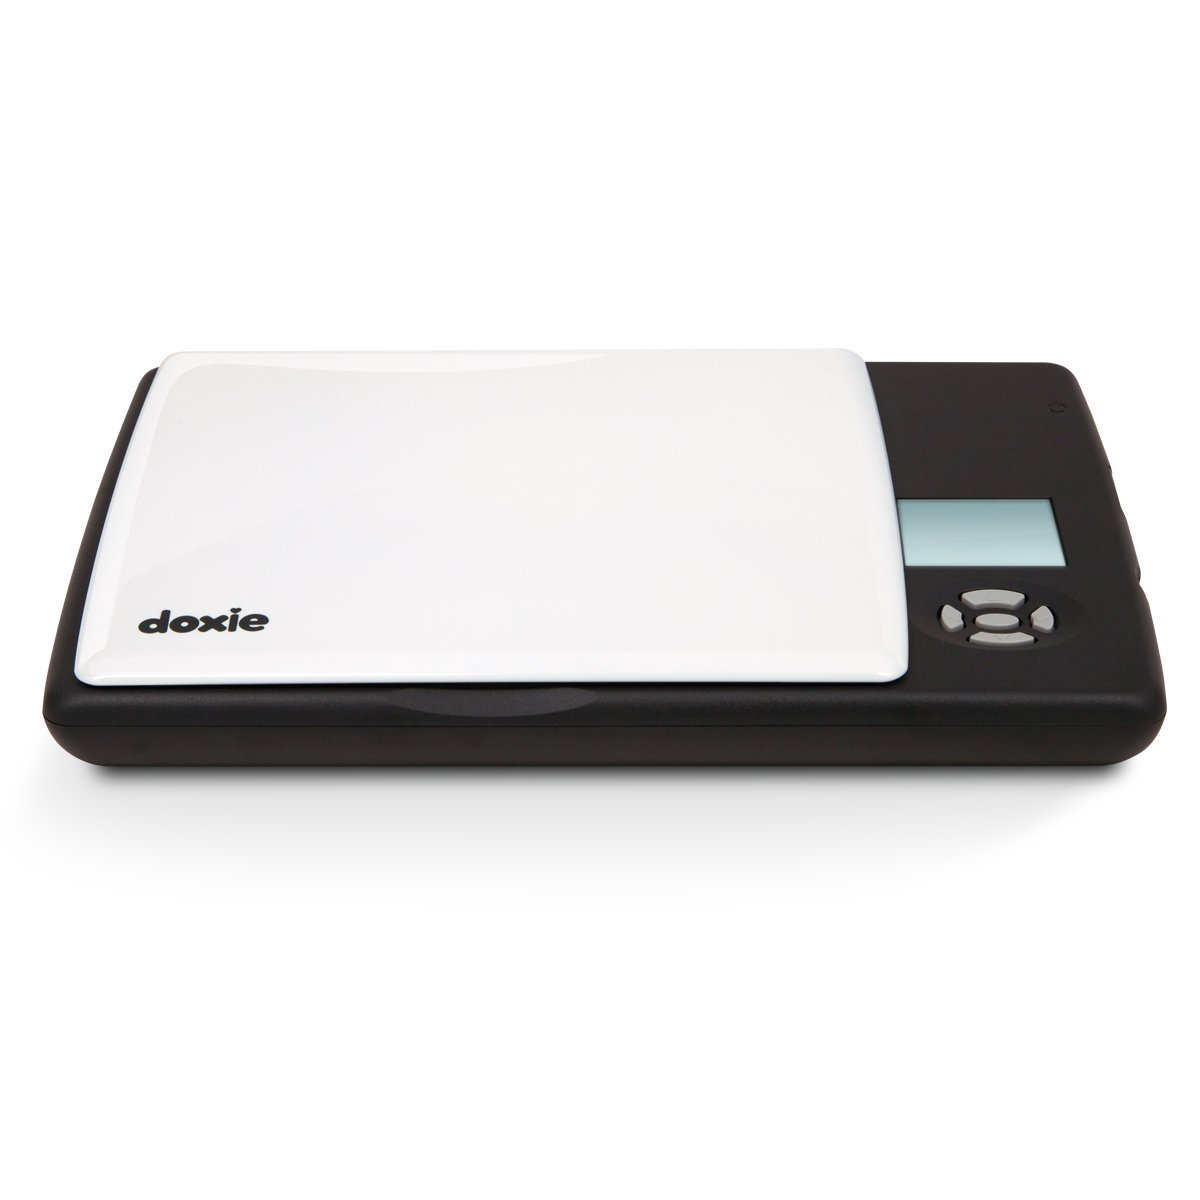 Doxie Flip - Cordless Flatbed Photo & Notebook Scanner w/ Removable Lid by Doxie